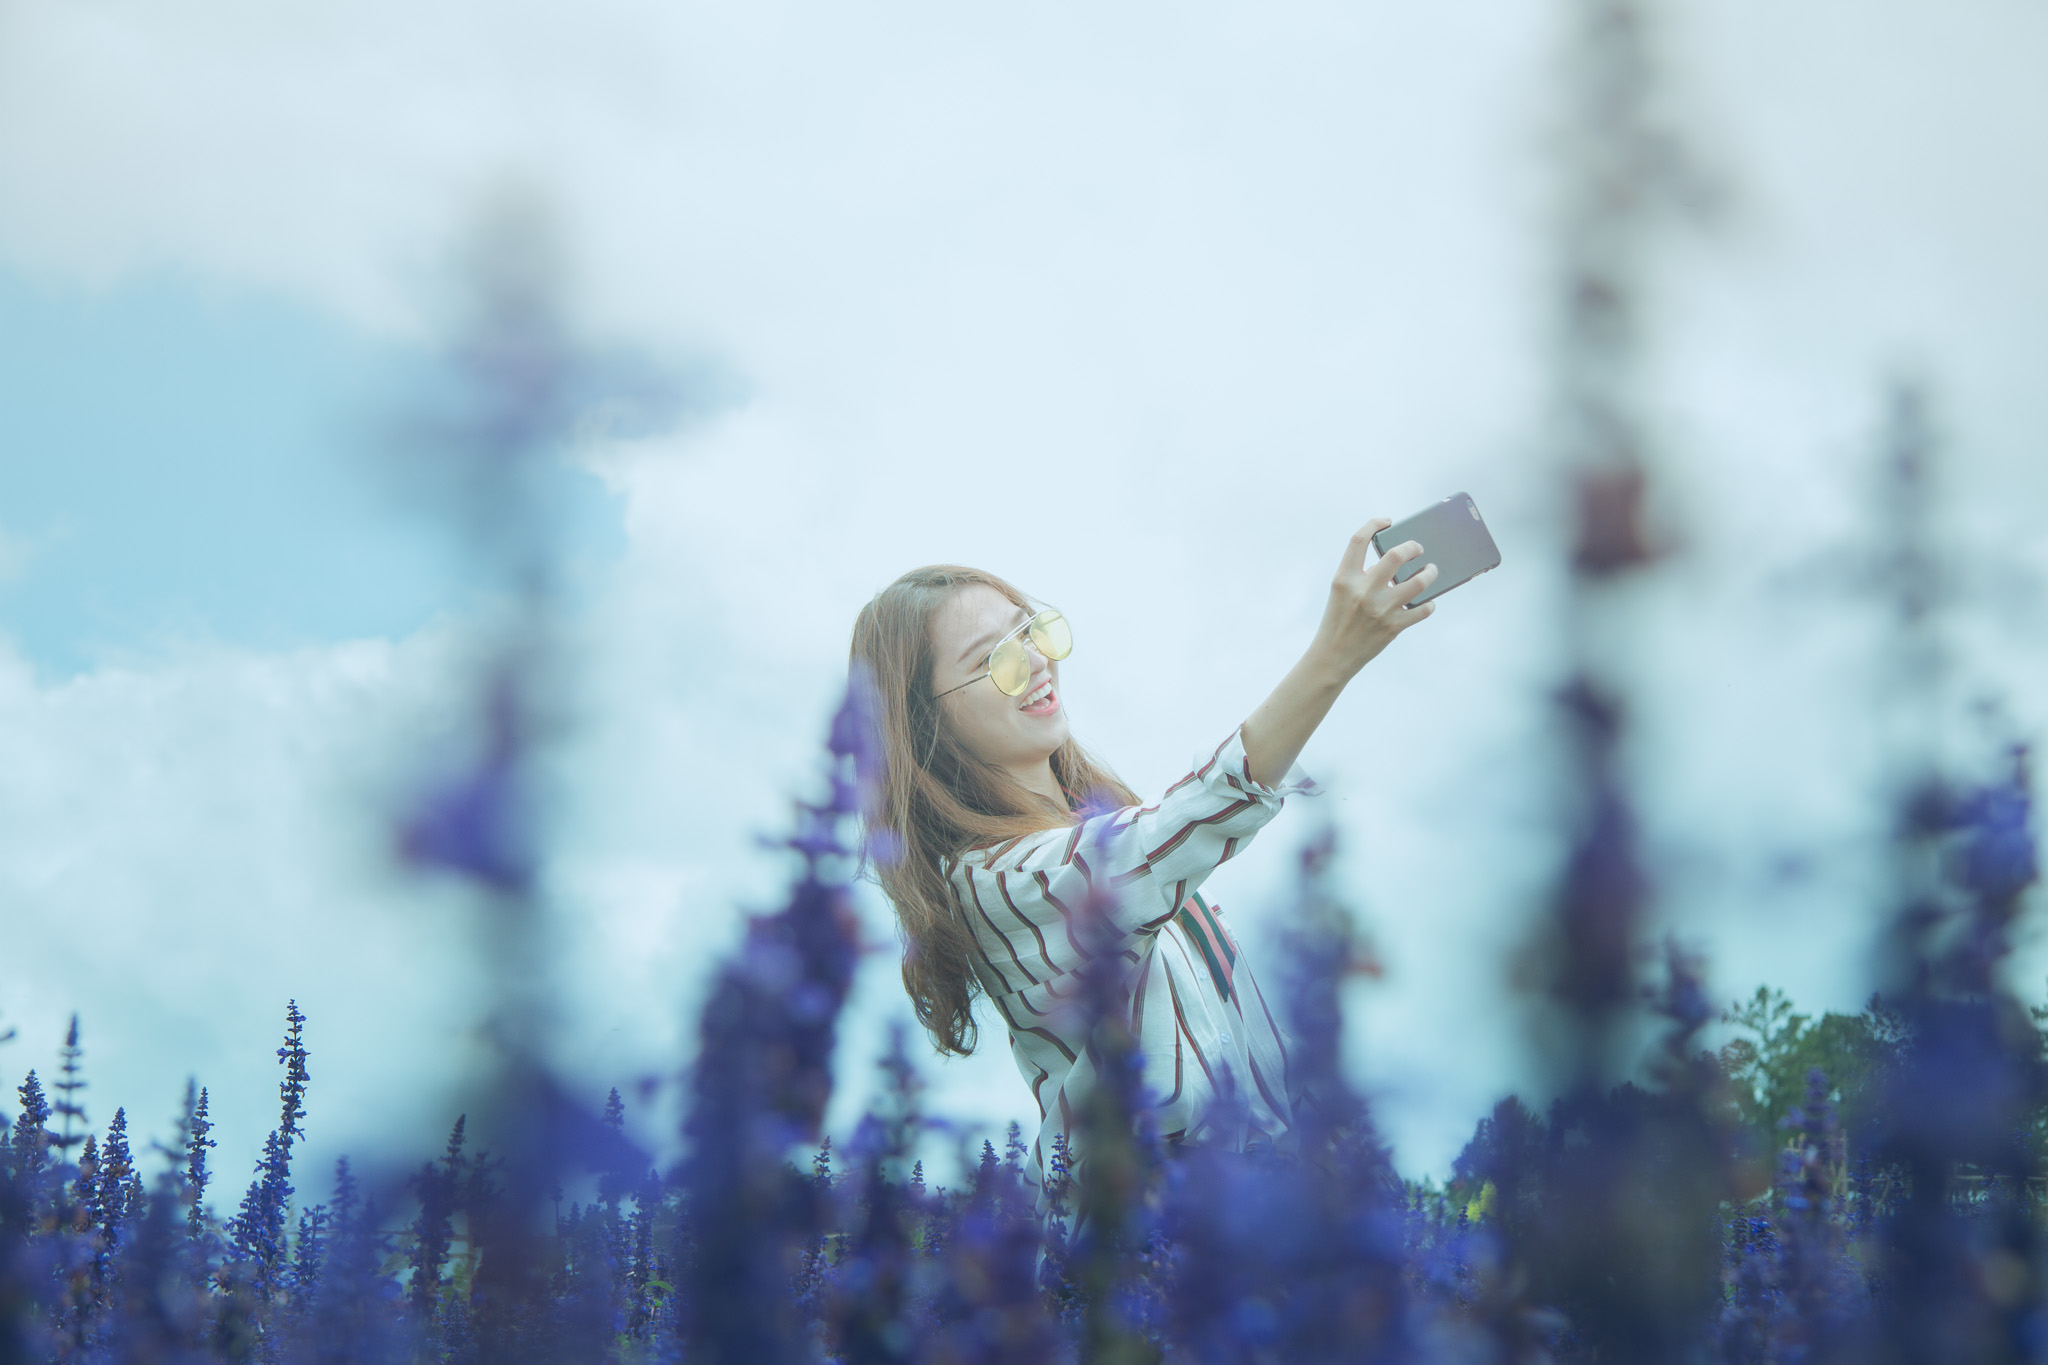 Woman in Black and White Dress Shirt Taking Photo on Lavender Flower Field at Daytime